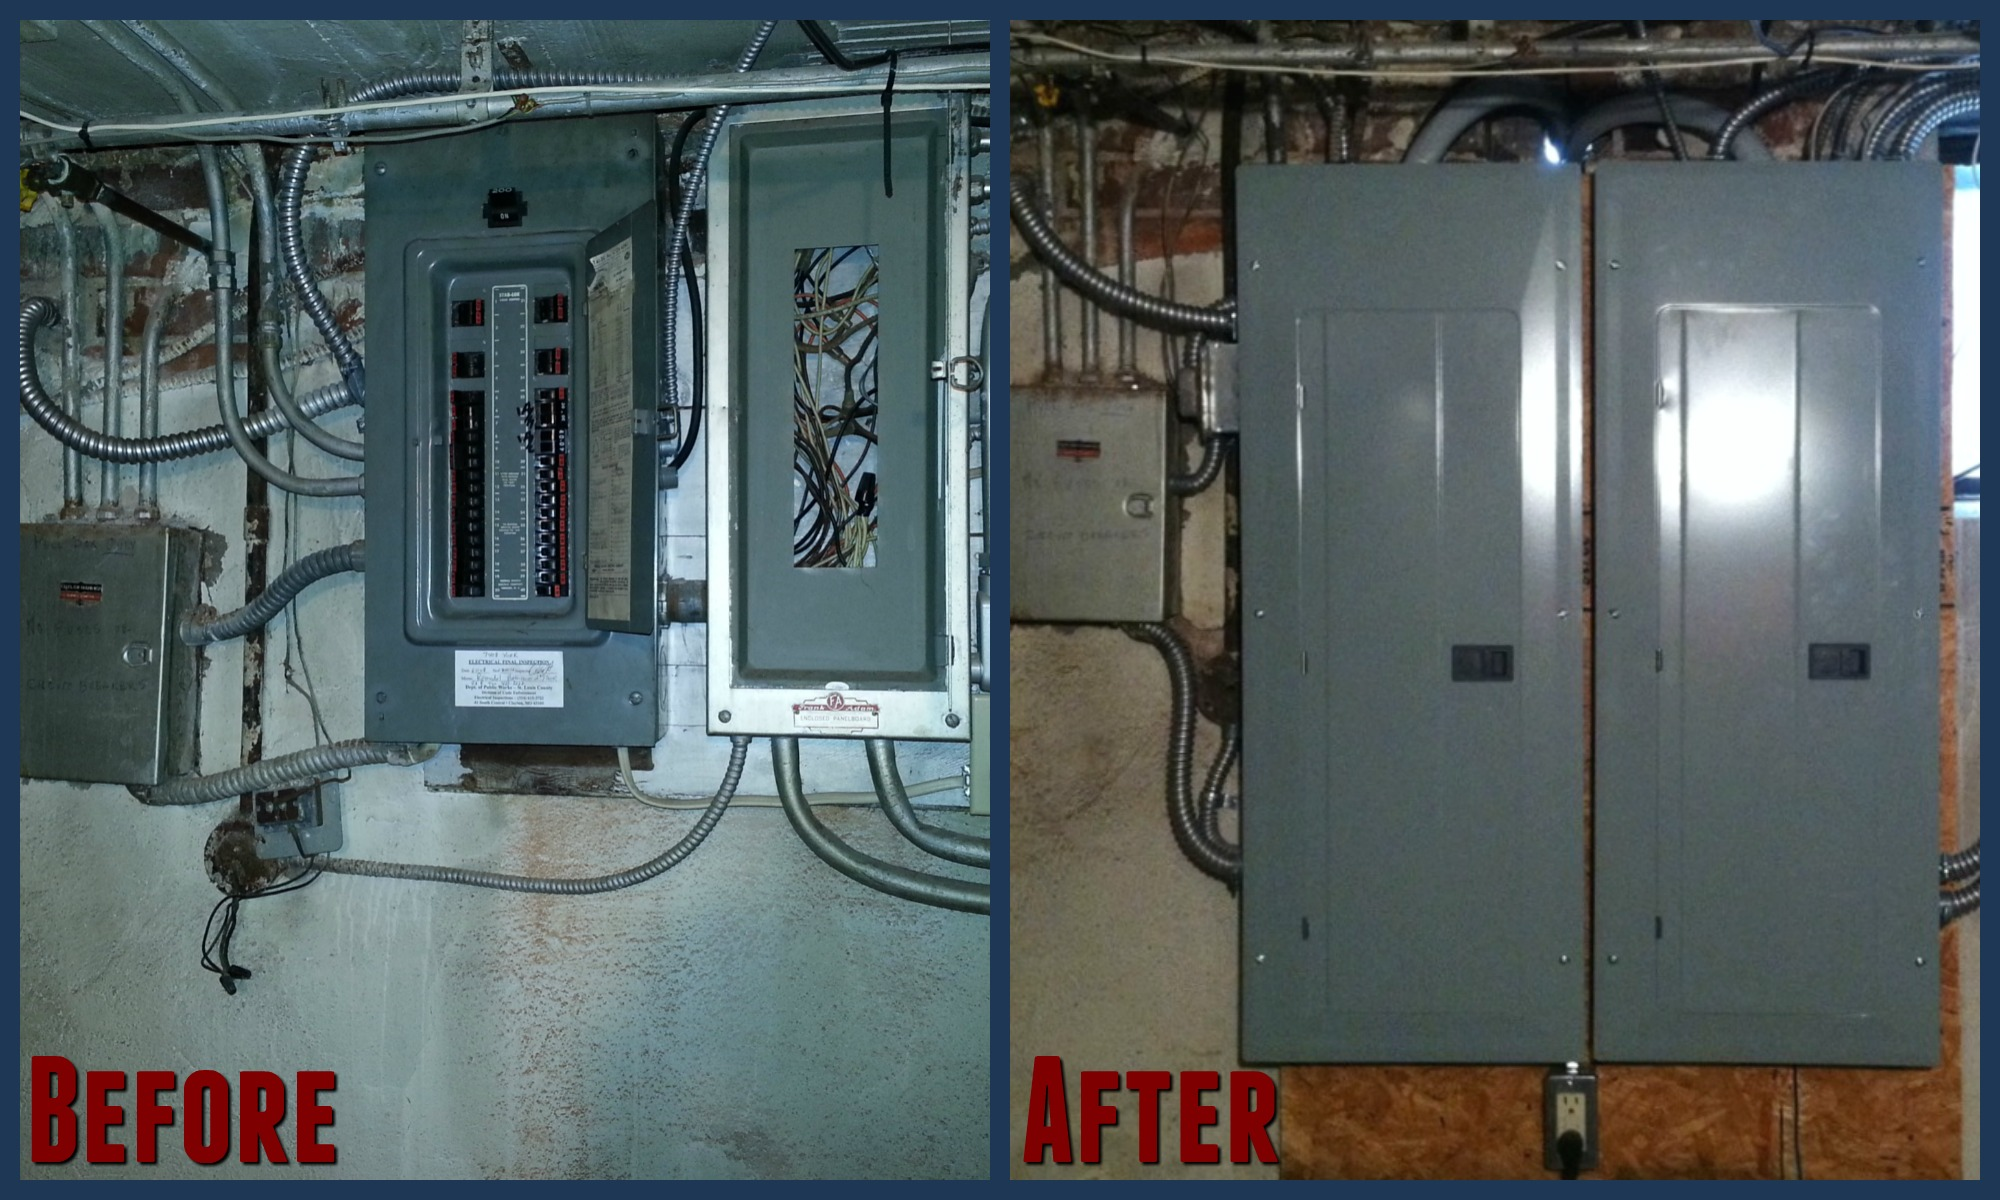 200 to 400 amp electric panel upgrade electrical panels fielder electrical services wiring a 400 amp service at gsmx.co